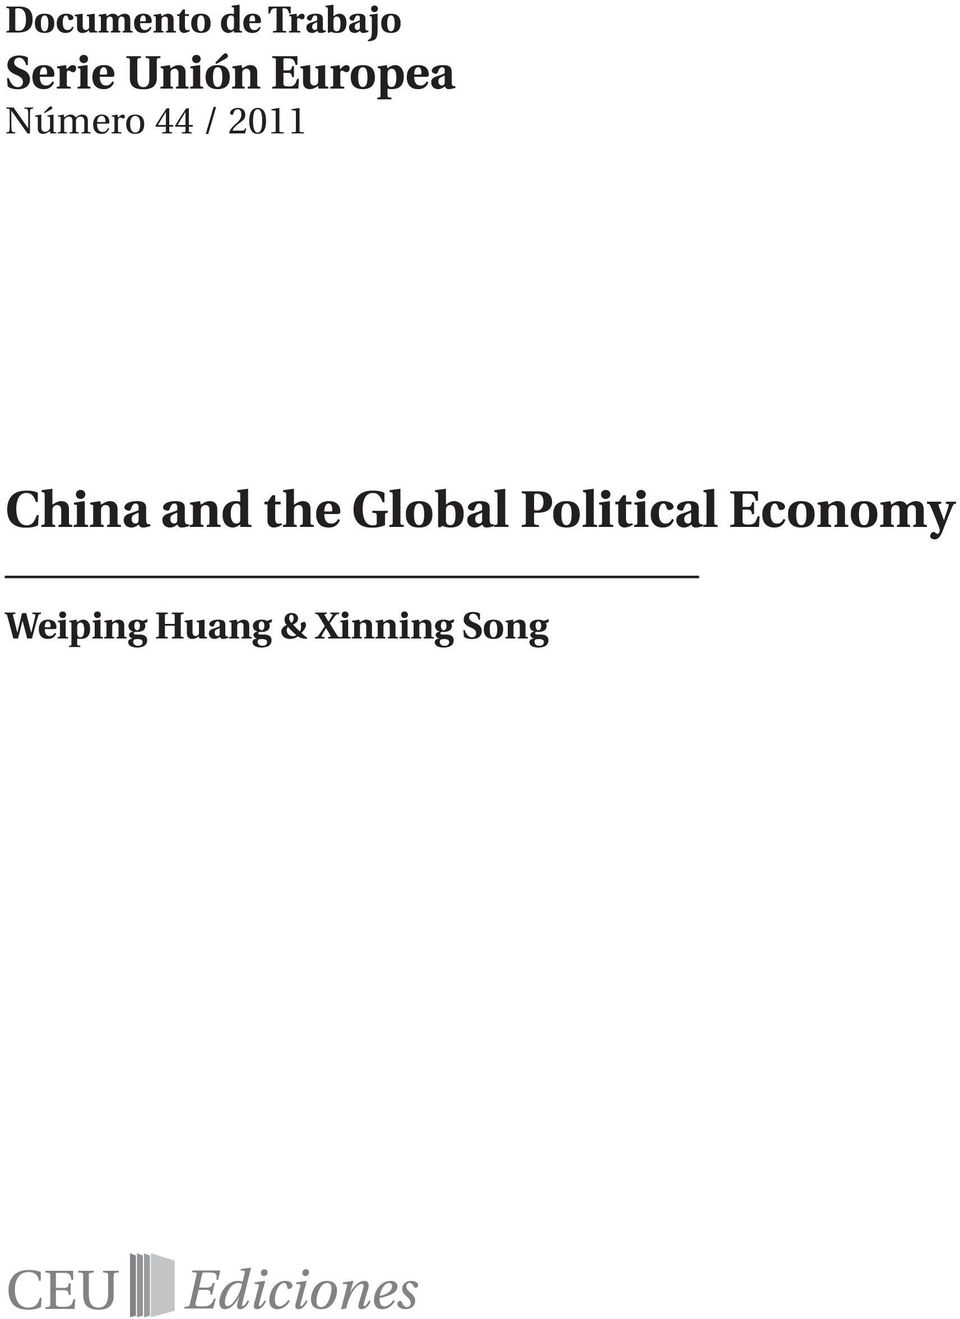 China and the Global Political